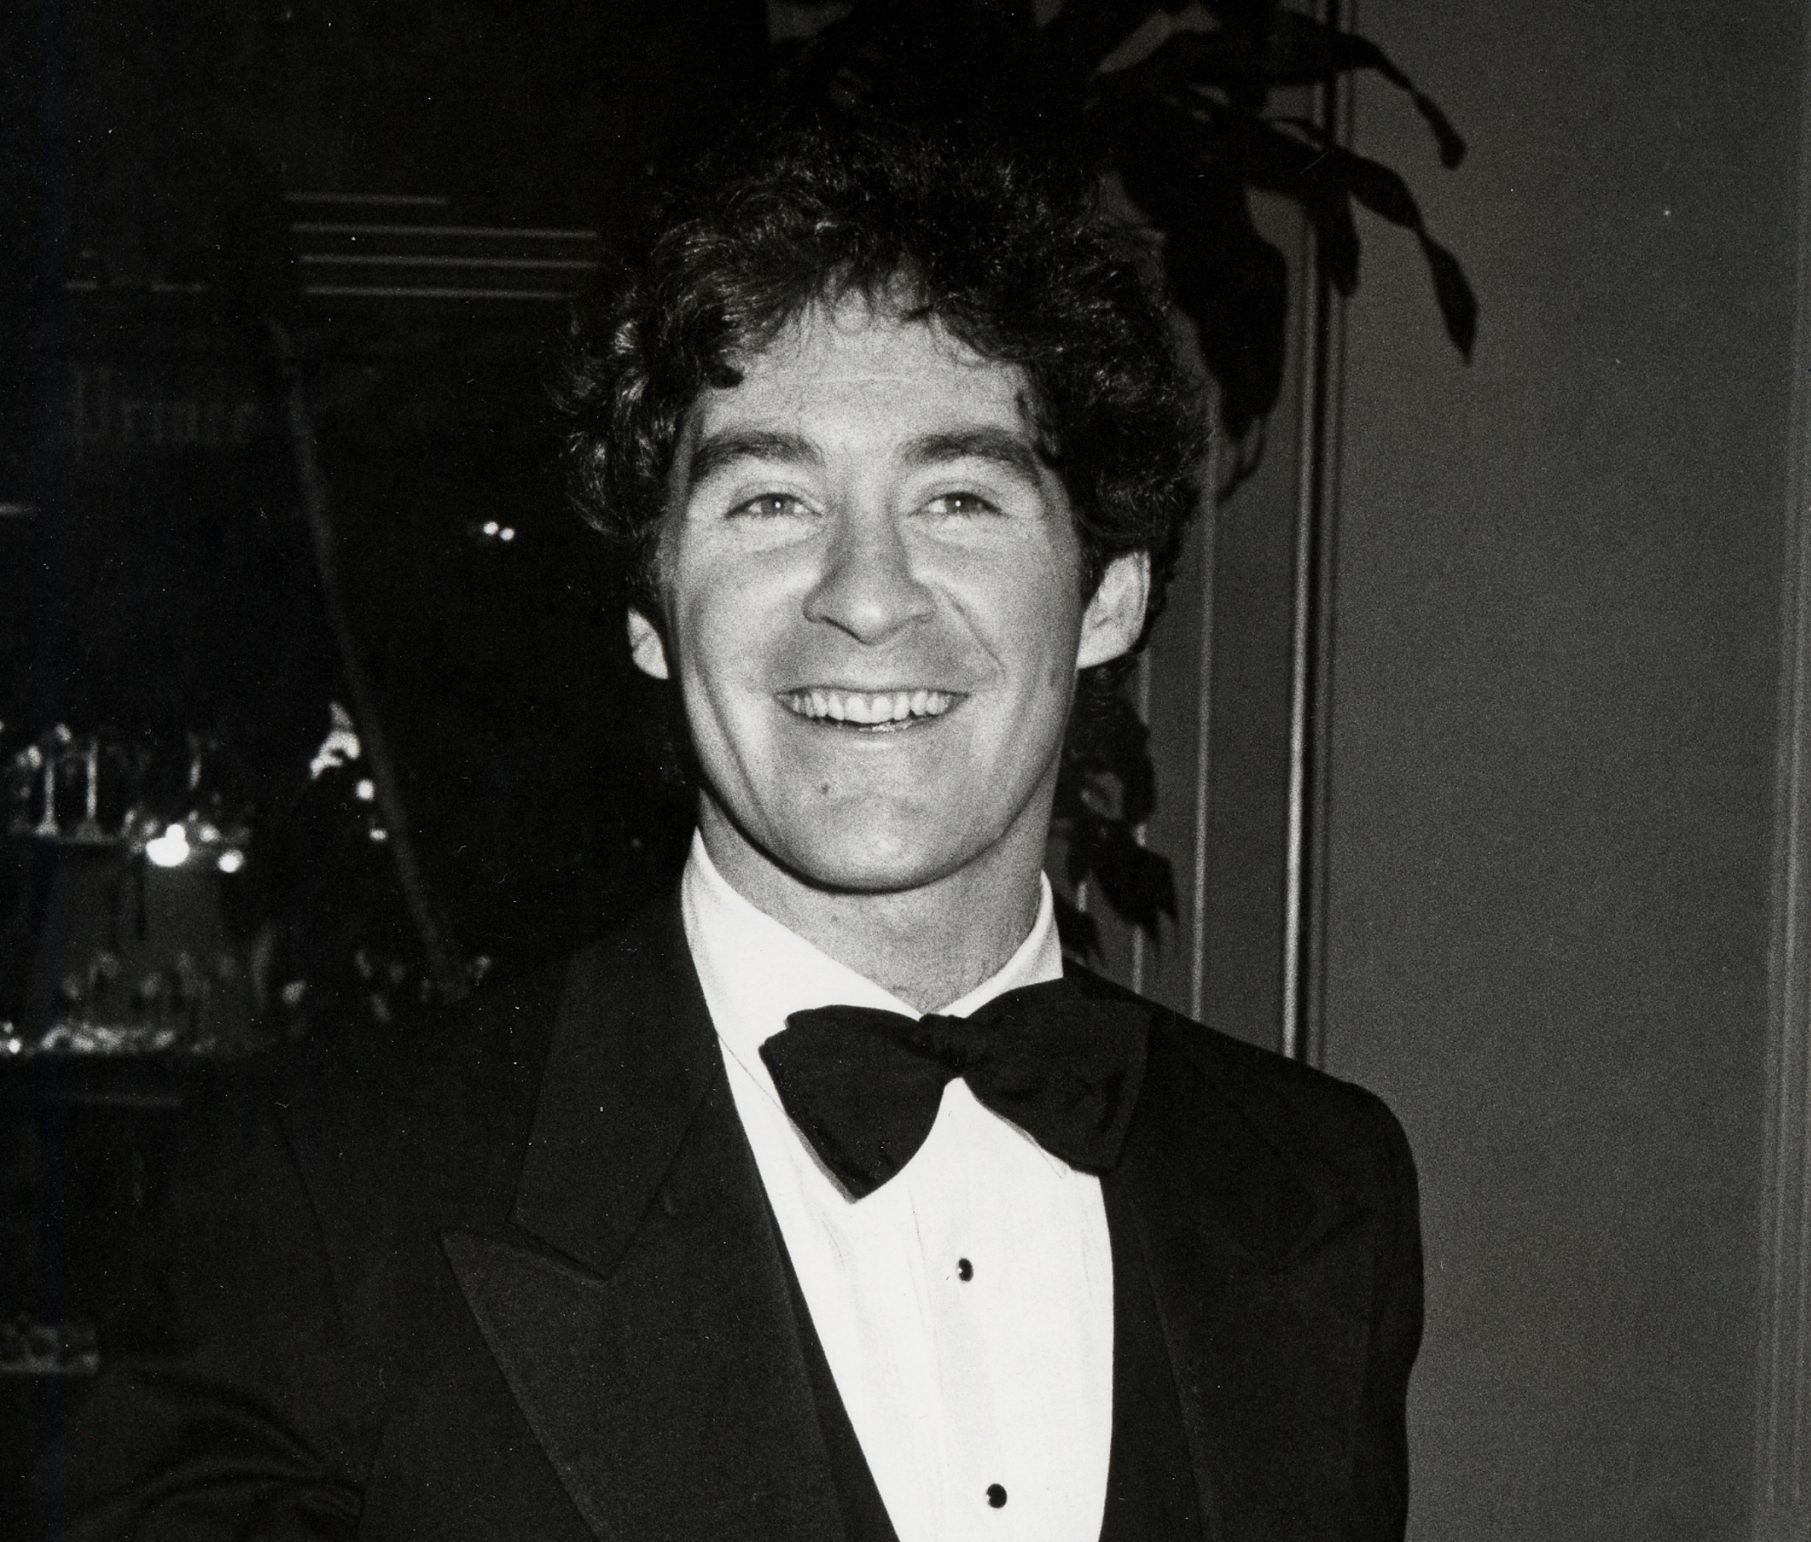 rs 183145 105859009 scaled e1604417938632 20 Things You Never Knew About Kevin Kline